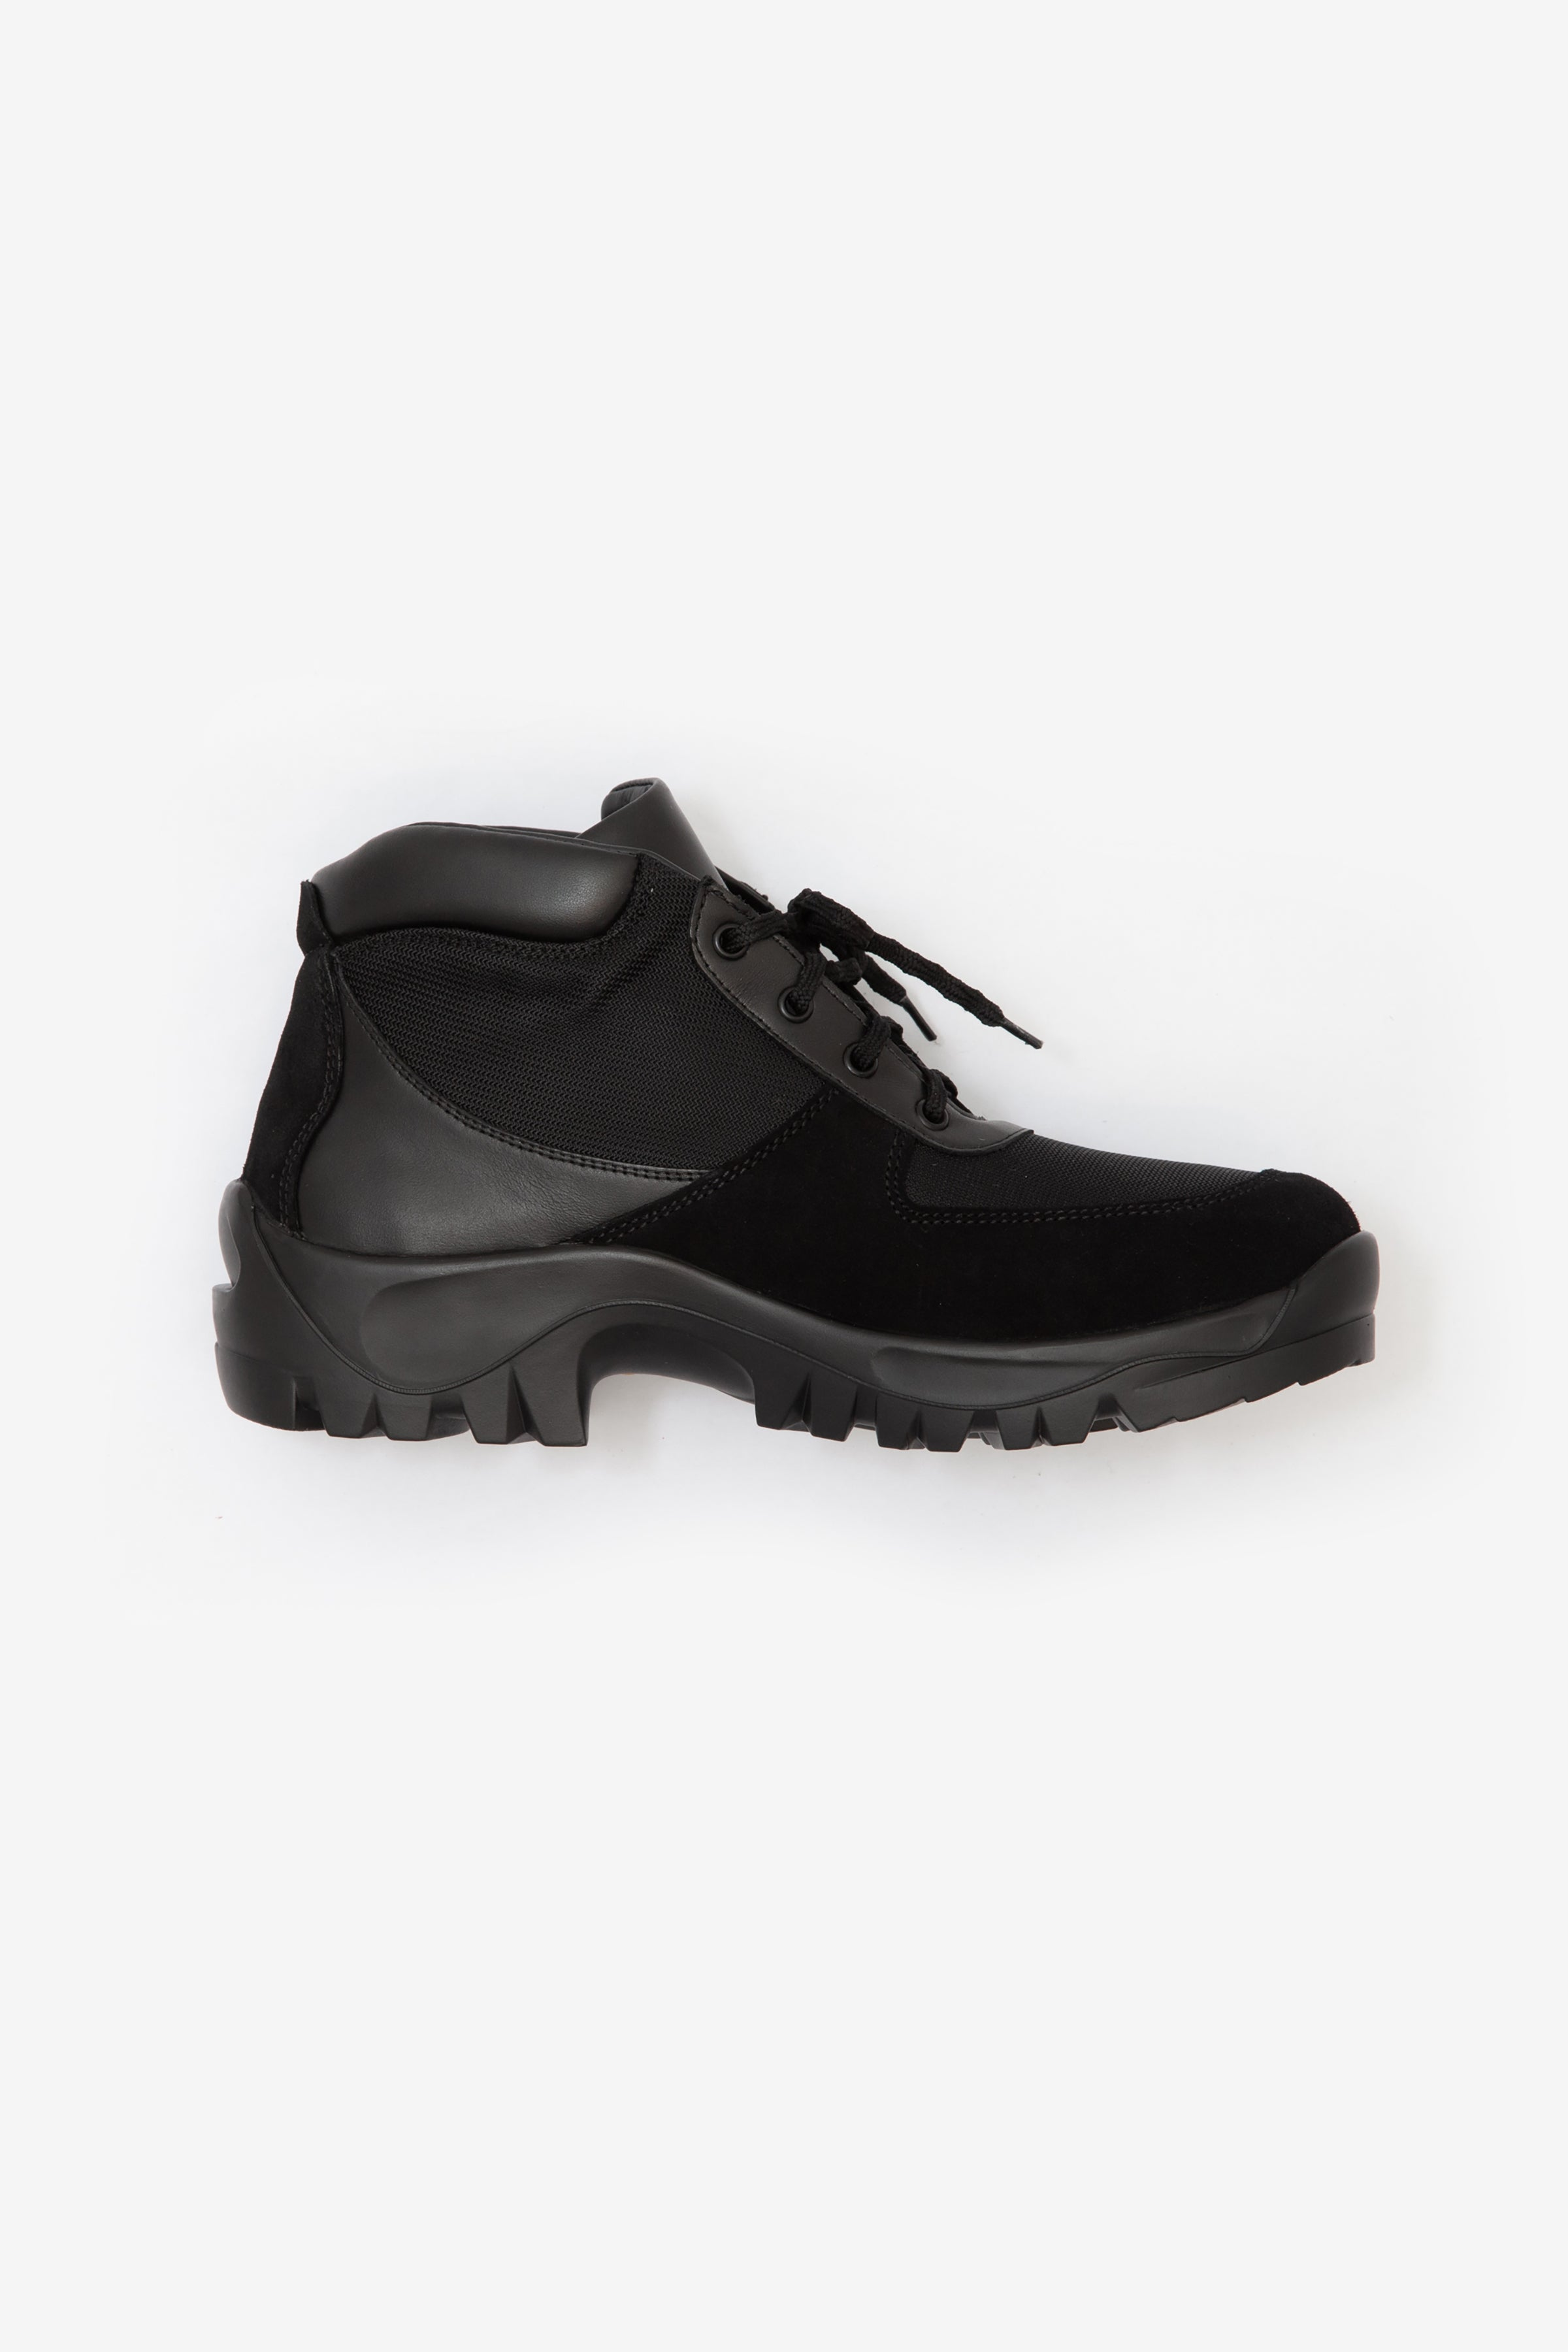 Our Legacy Nebula Boot Black Suede